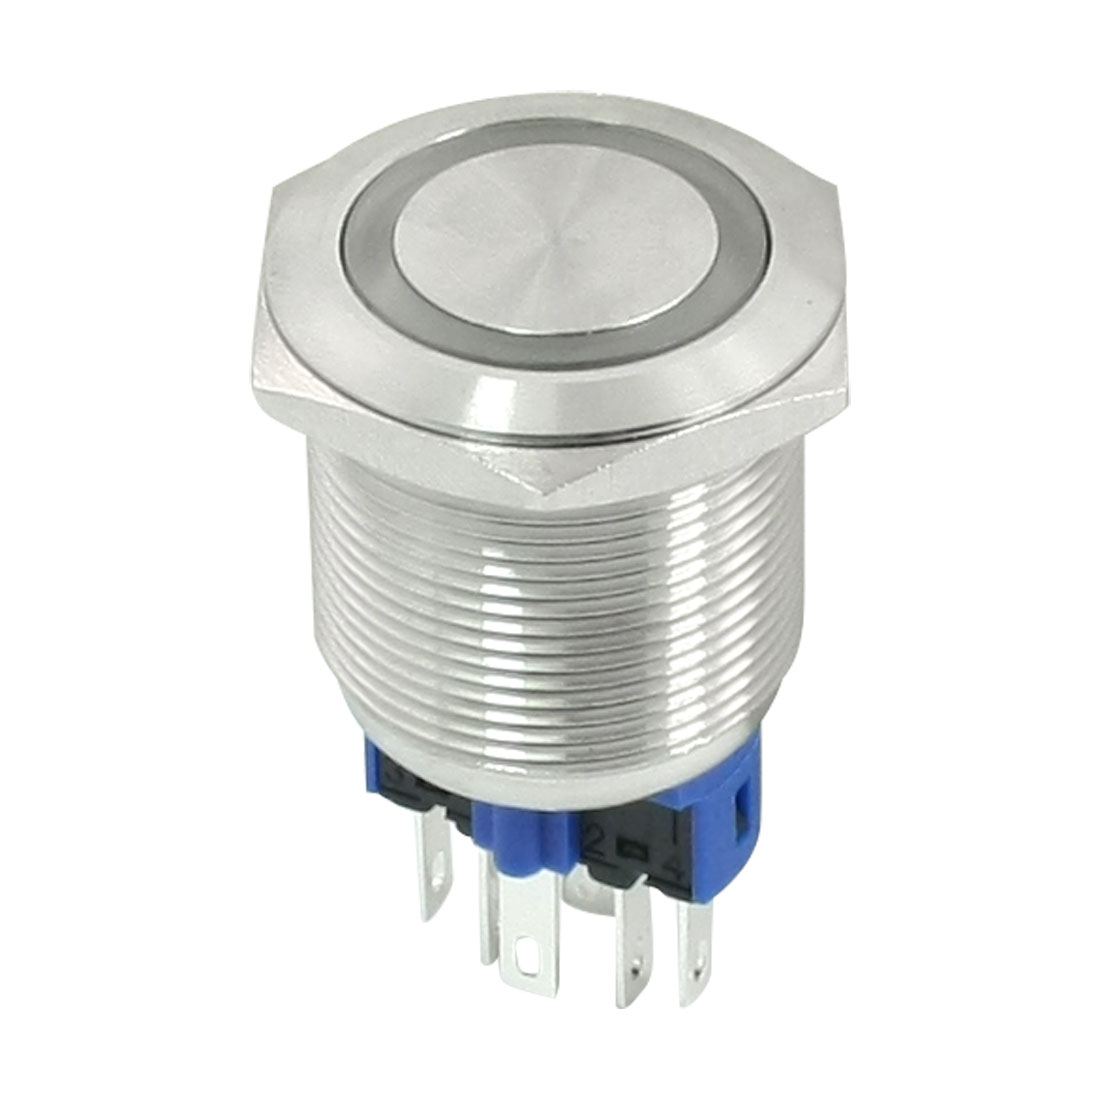 DC 12V Red Angel Eye LED Light DPST 1NO 1NC 6 Pins 22mm Latching Stainless Steel Push Button Switch